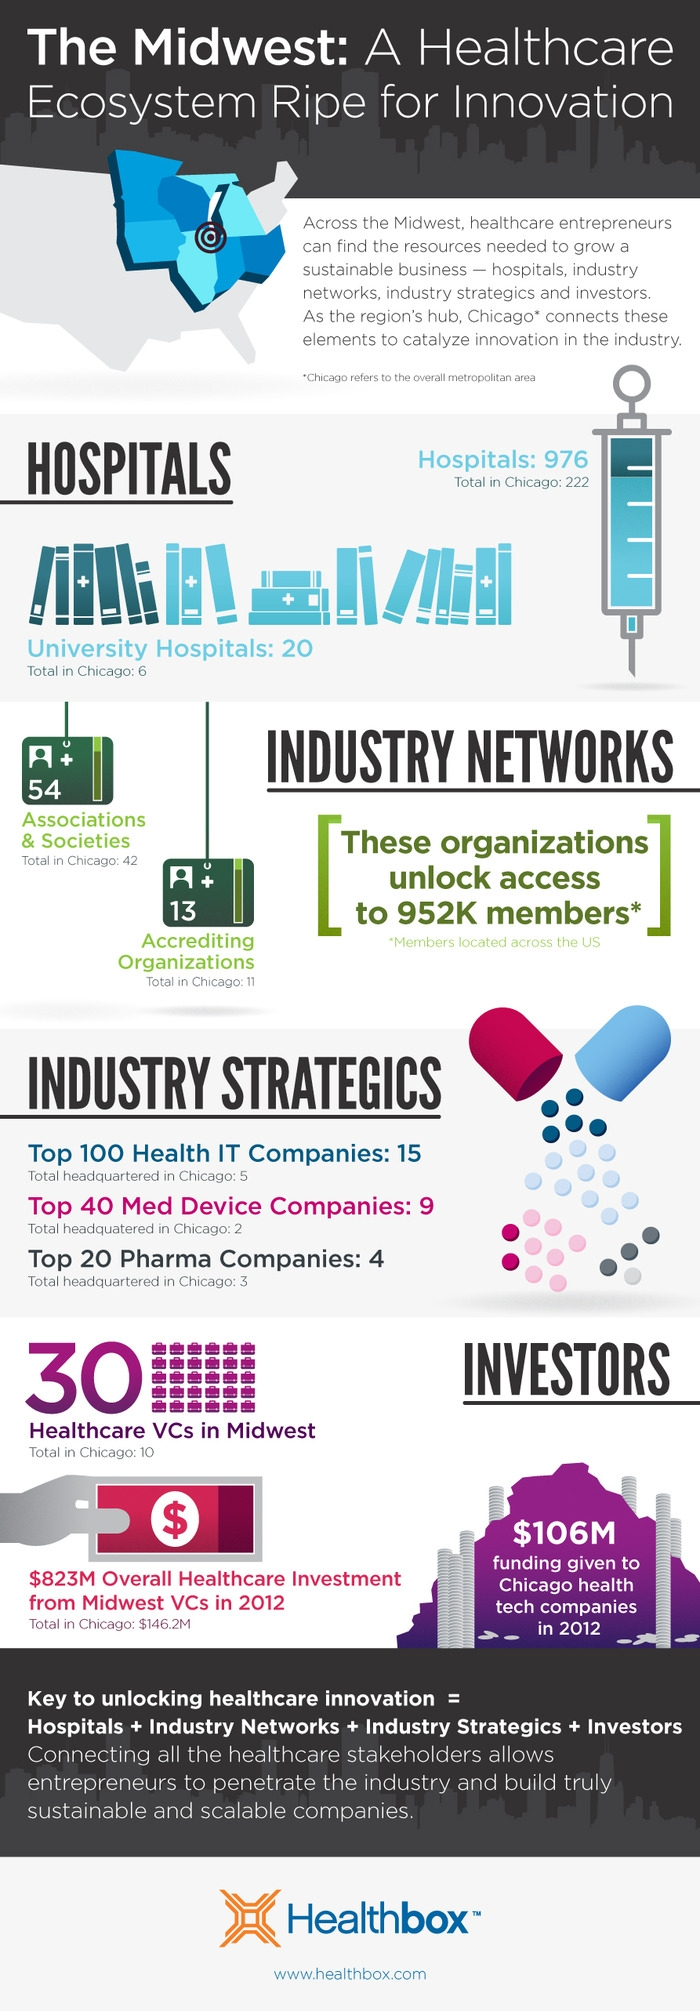 The Midwest: An Ecosystem Ripe for Healthcare Innovation (Infographic)